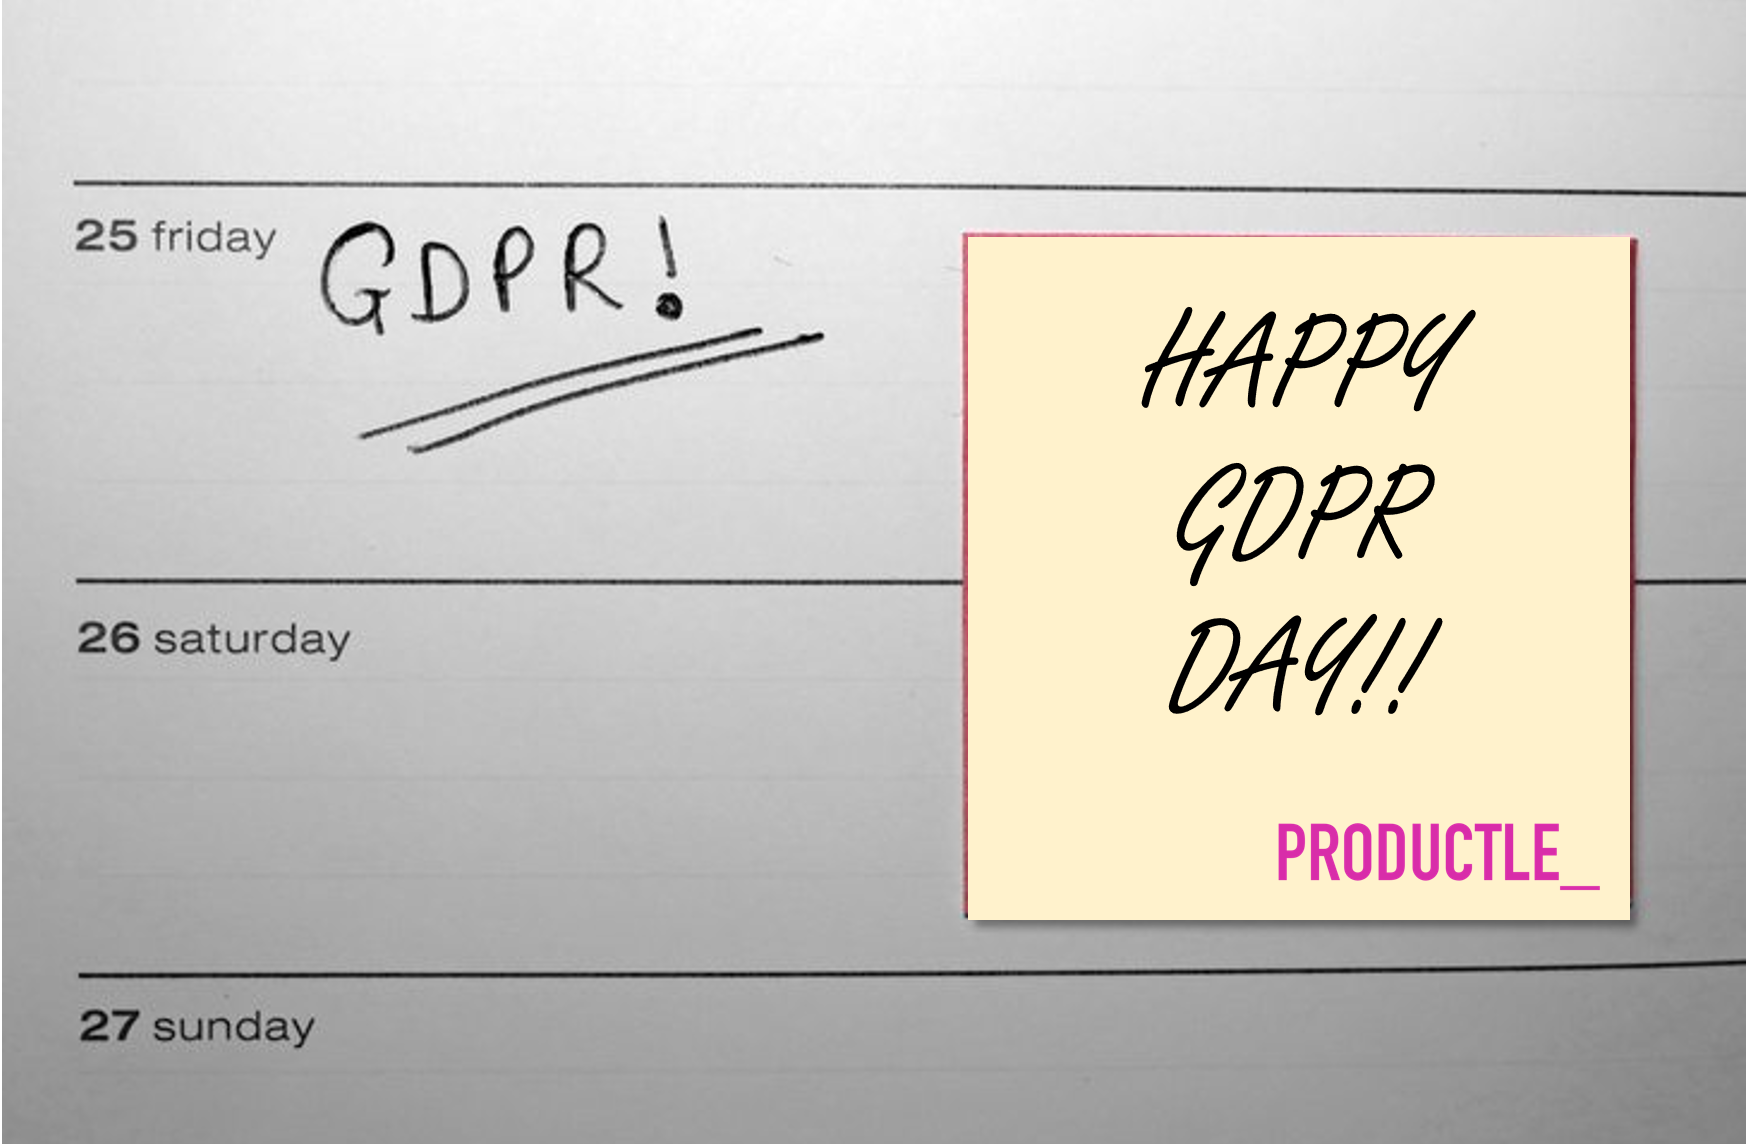 Happy GDPR Day